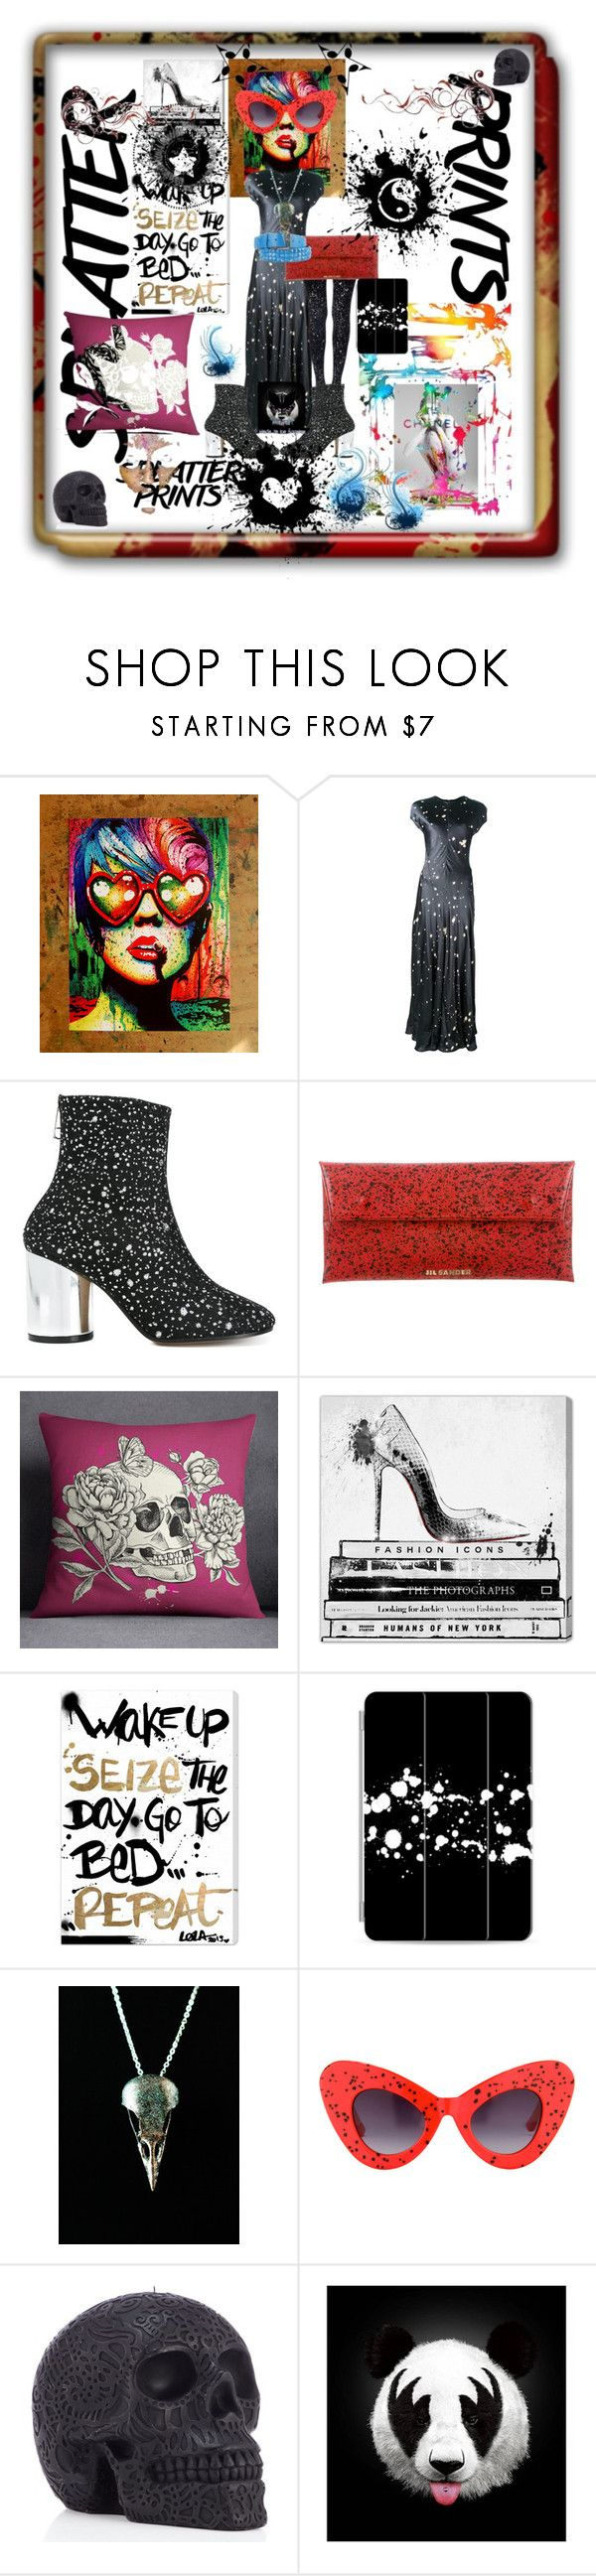 """Splatter ⚛️ Madness ⚛️Diva"" by maijah ❤ liked on Polyvore featuring Chanel, Alexander Wang, Maison Margiela, Jil Sander, Oliver Gal Artist Co., Casetify, Jeremy Scott, Monde Mosaic, splatter and Spring2017"